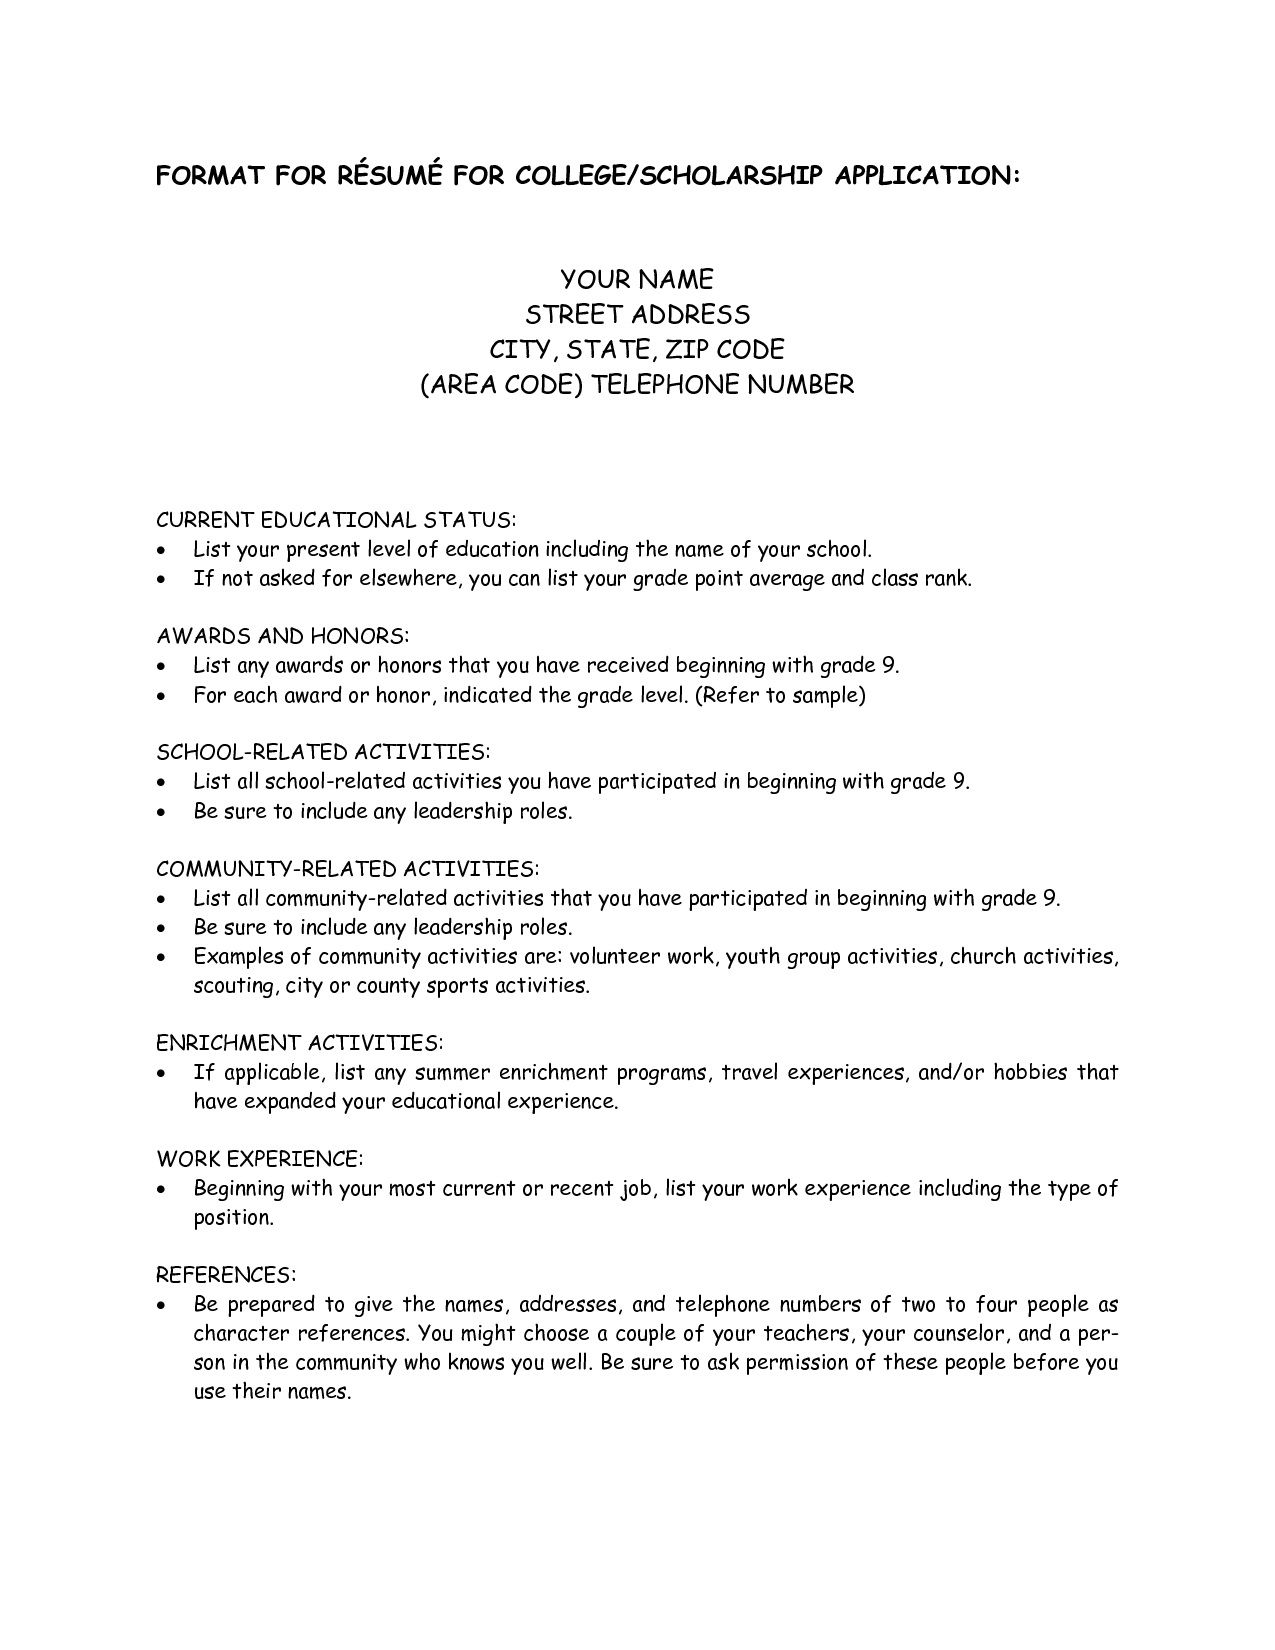 Resume Examples For College Applications College Scholarship Resume Template 1197 Http